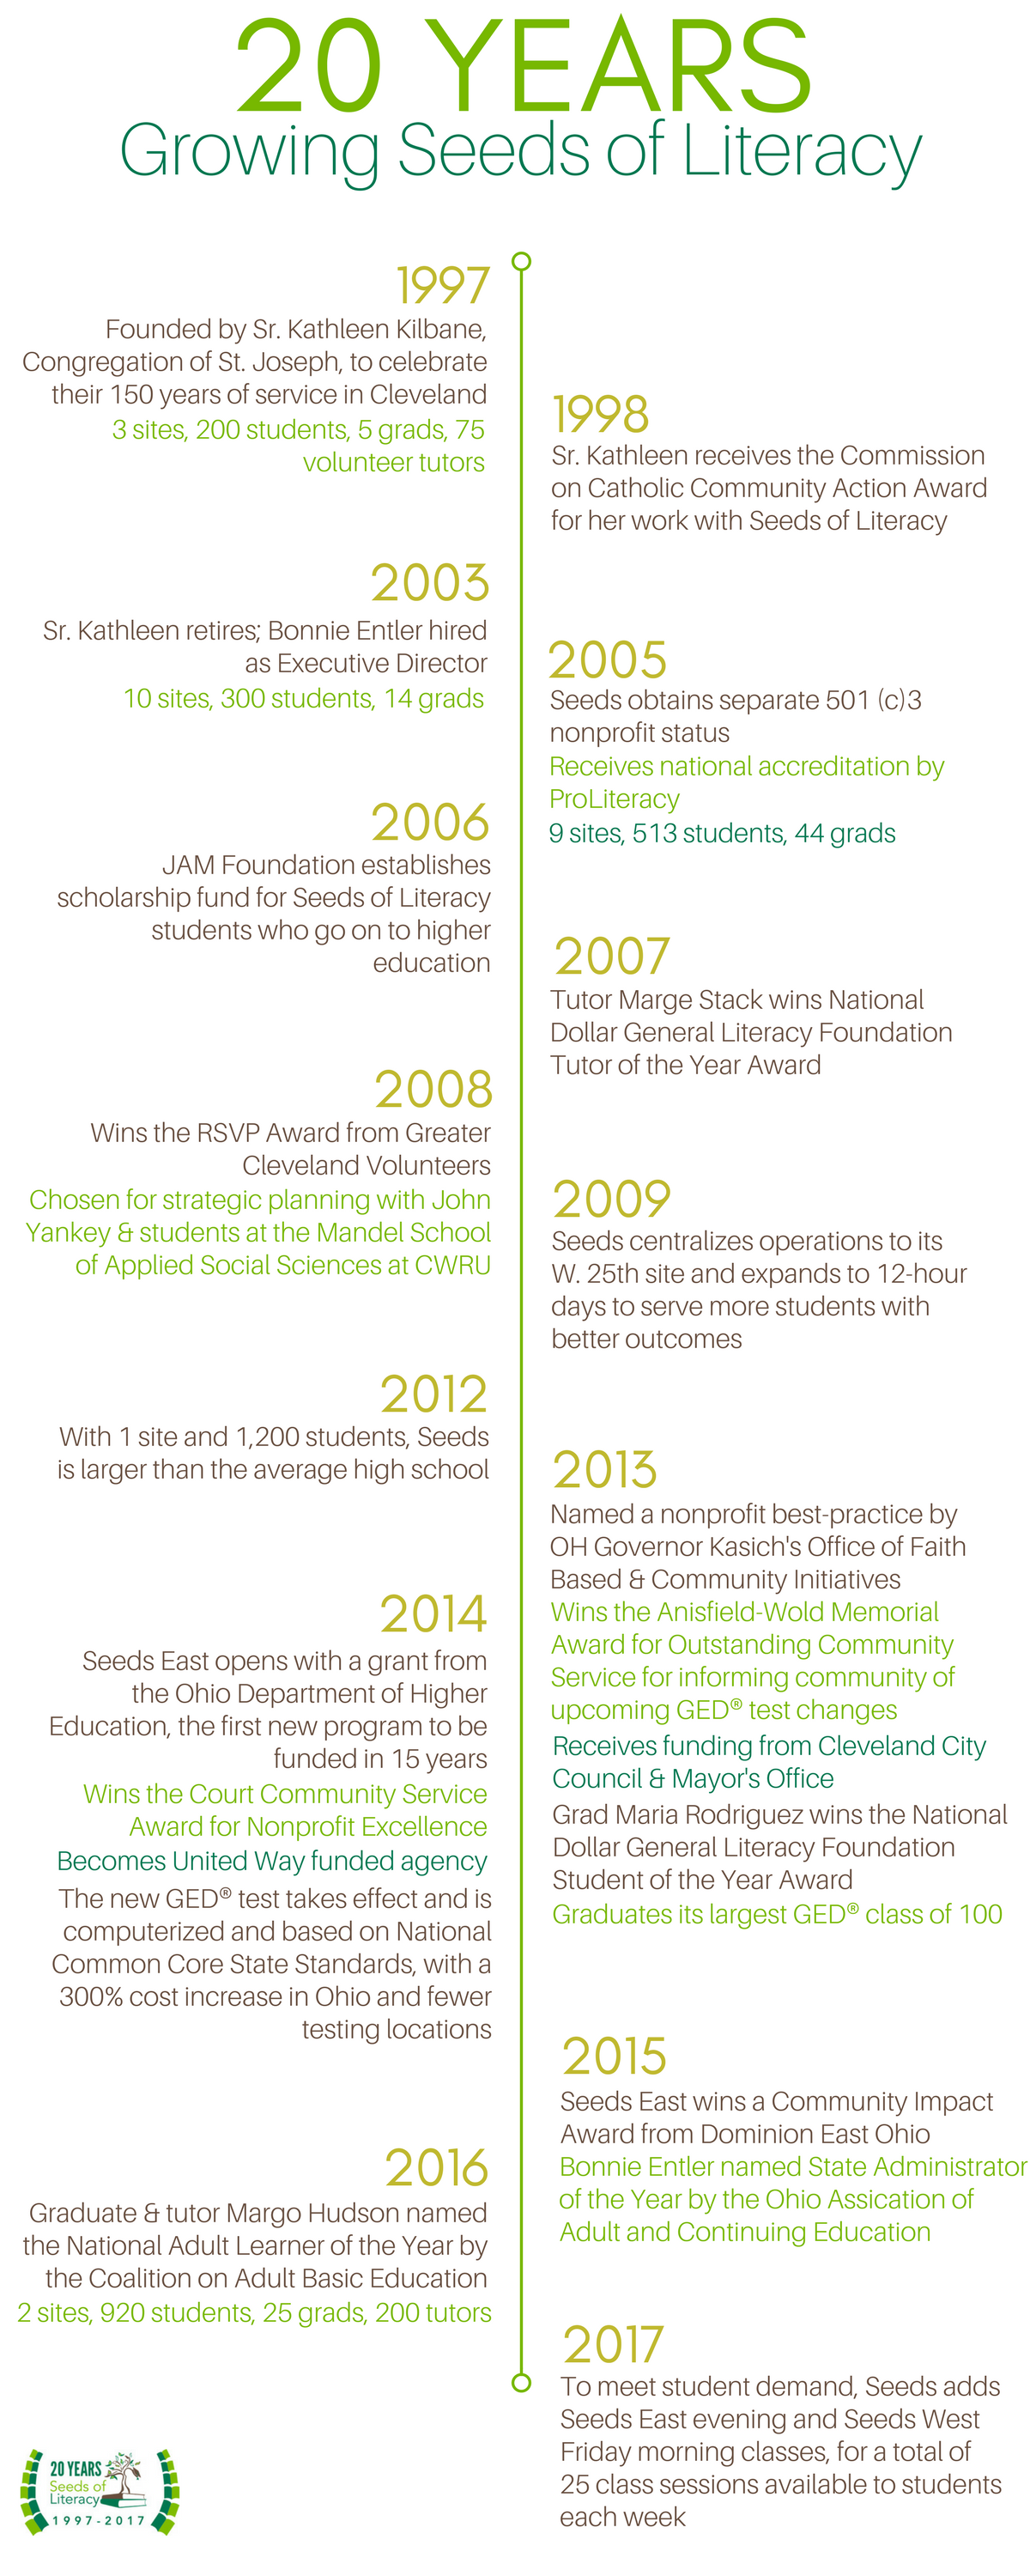 Seeds of Literacy's 20 years of providing free GED classes and adult basic education tutoring in Cleveland.